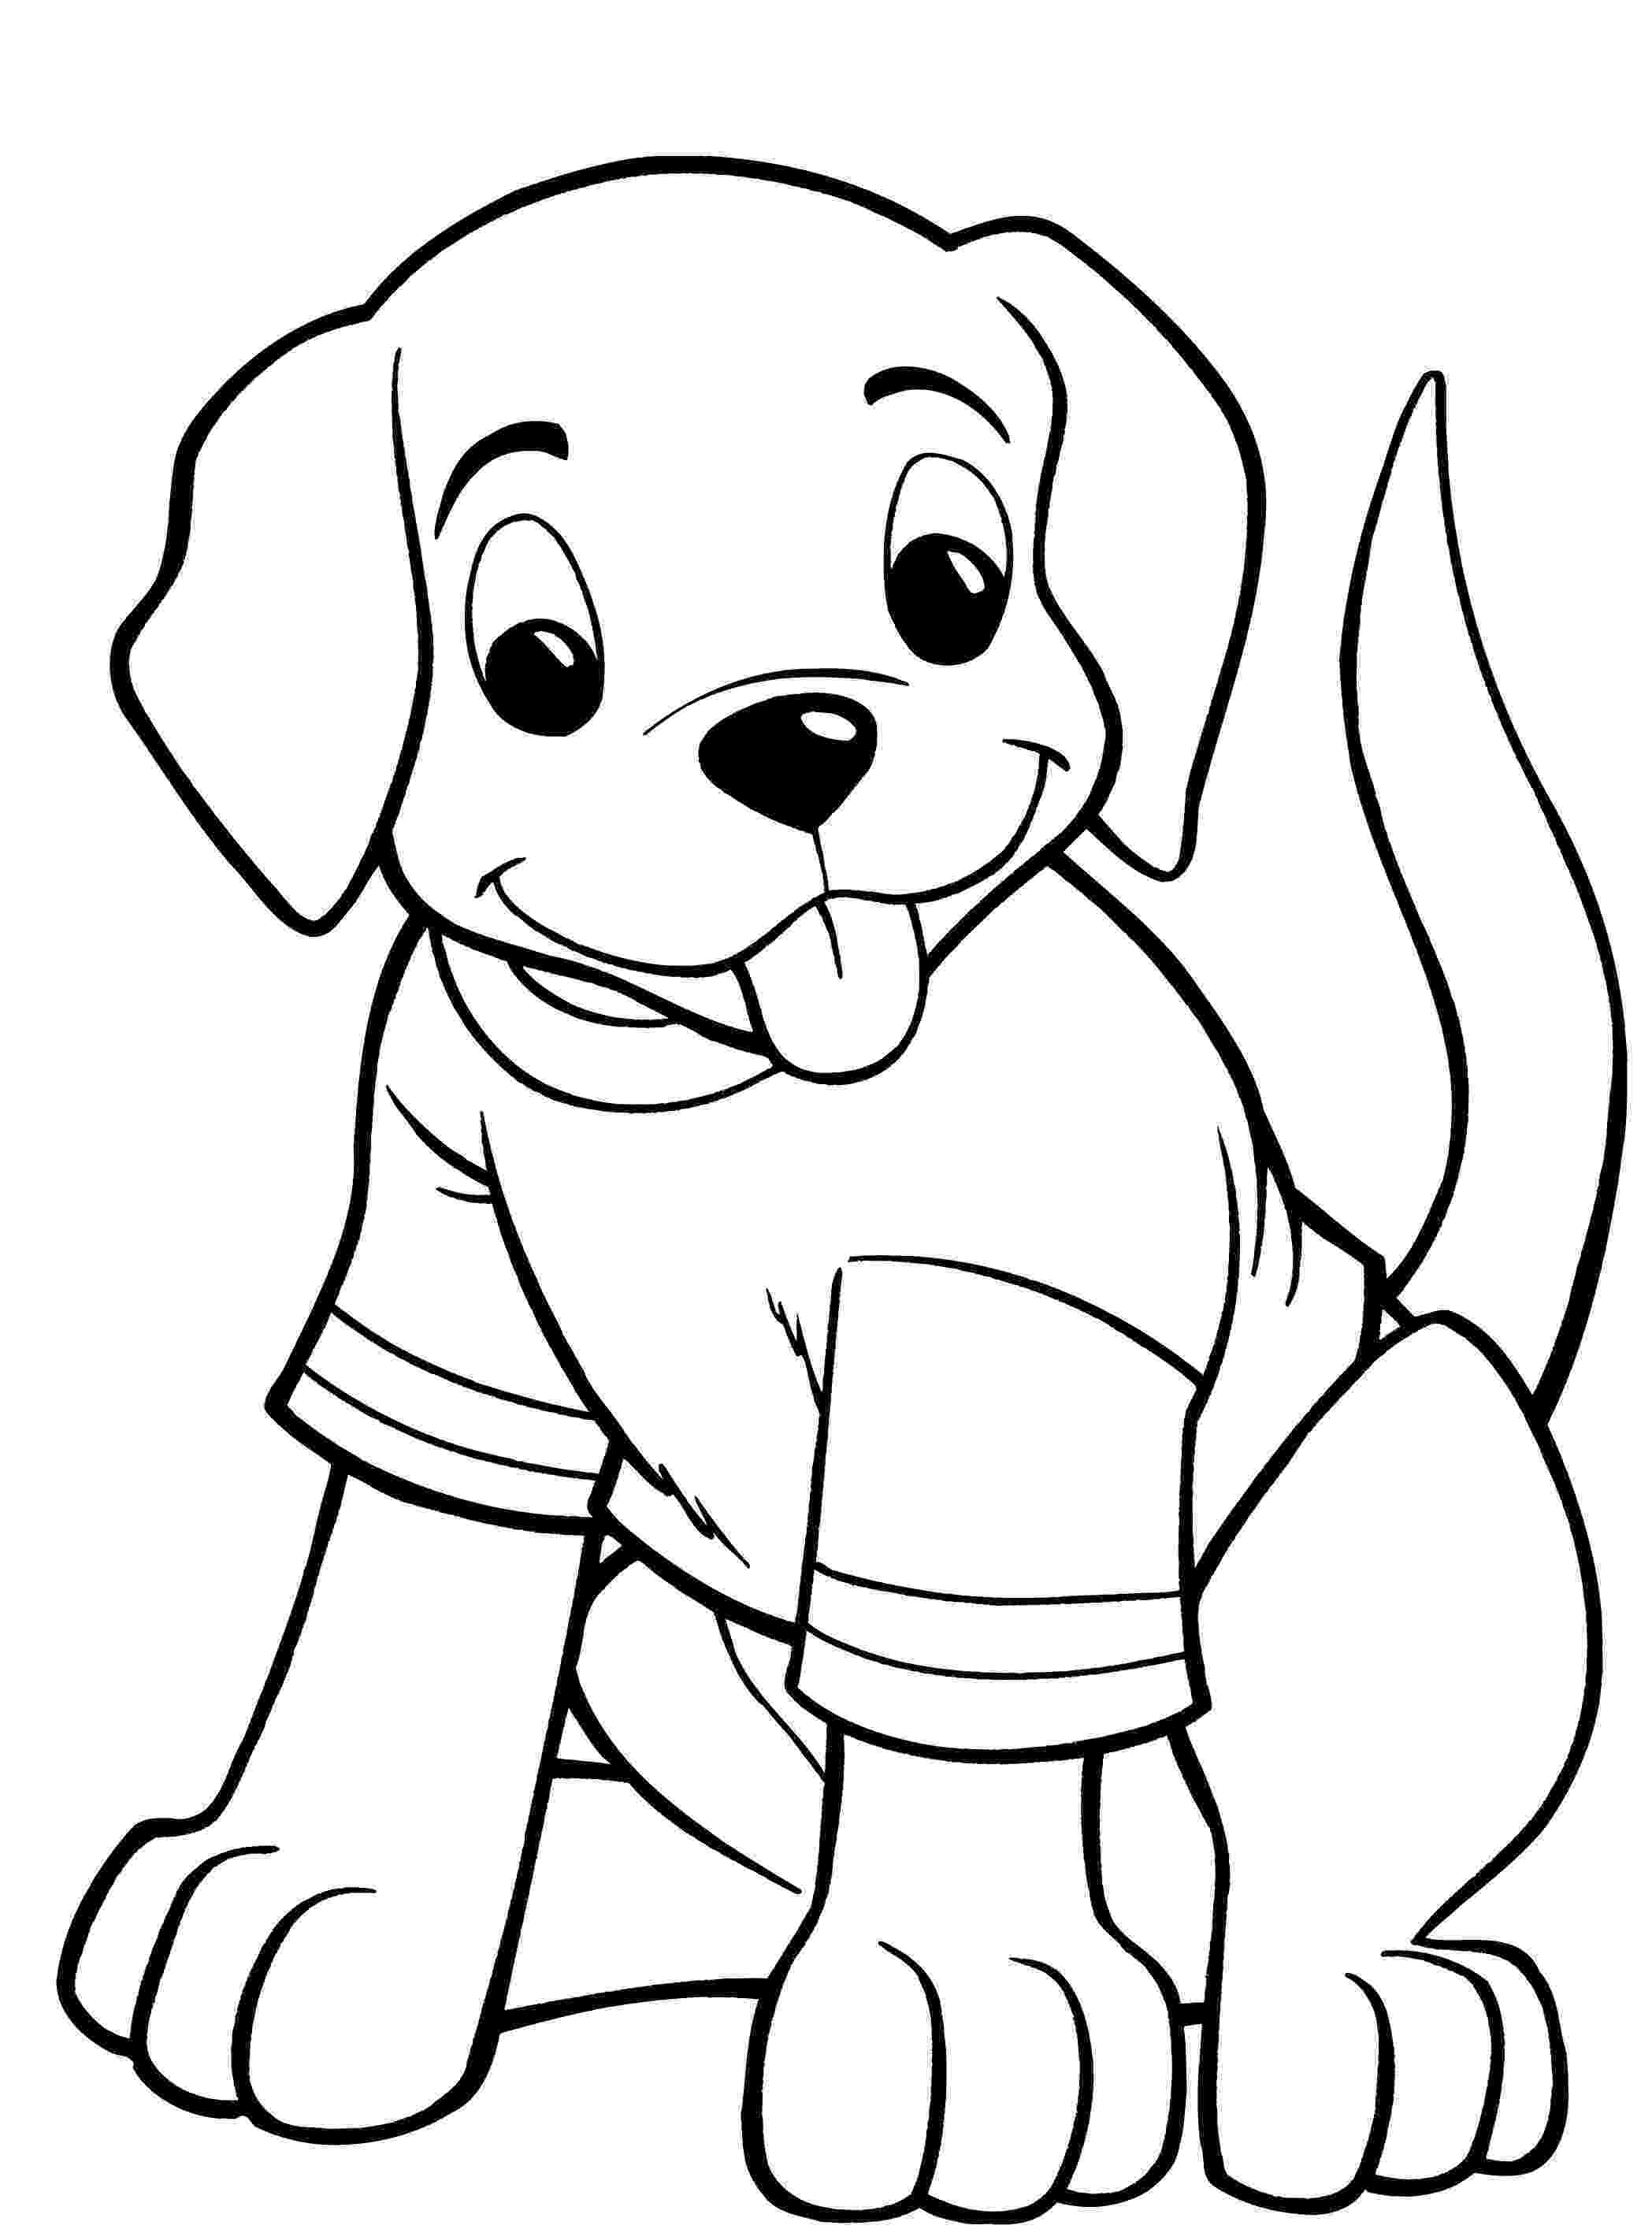 coloring sheets of dogs free printable dog coloring pages for kids sheets of dogs coloring